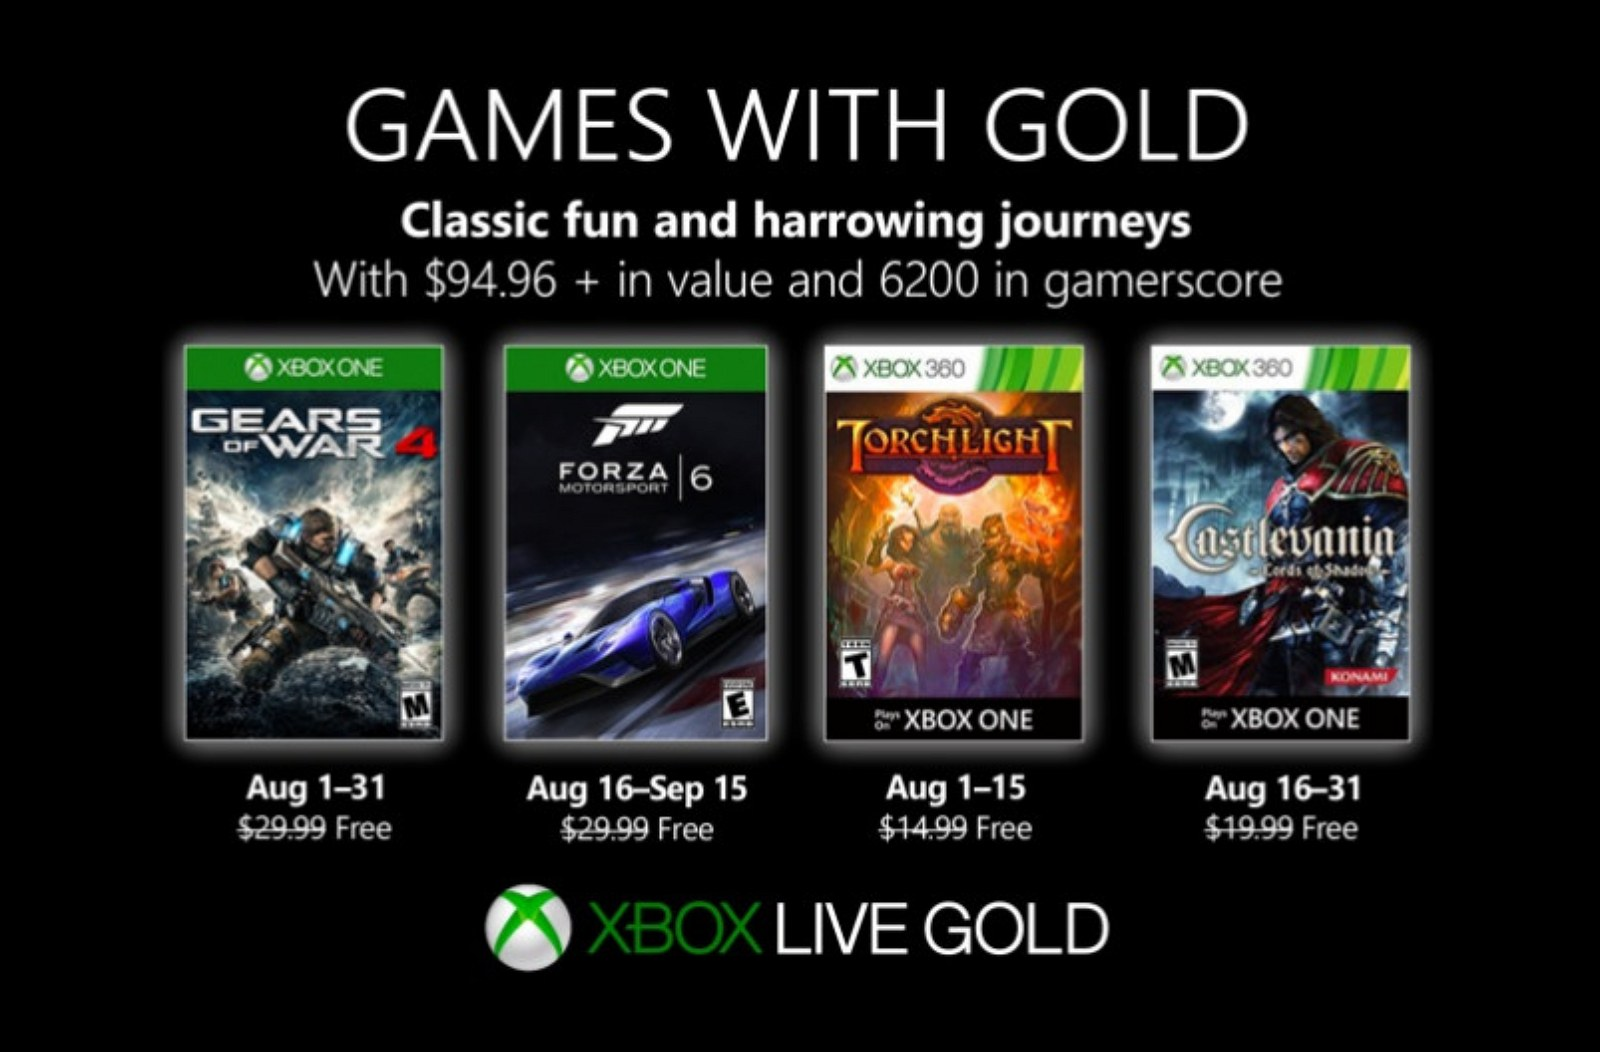 Xbox Games with Gold for August 2019